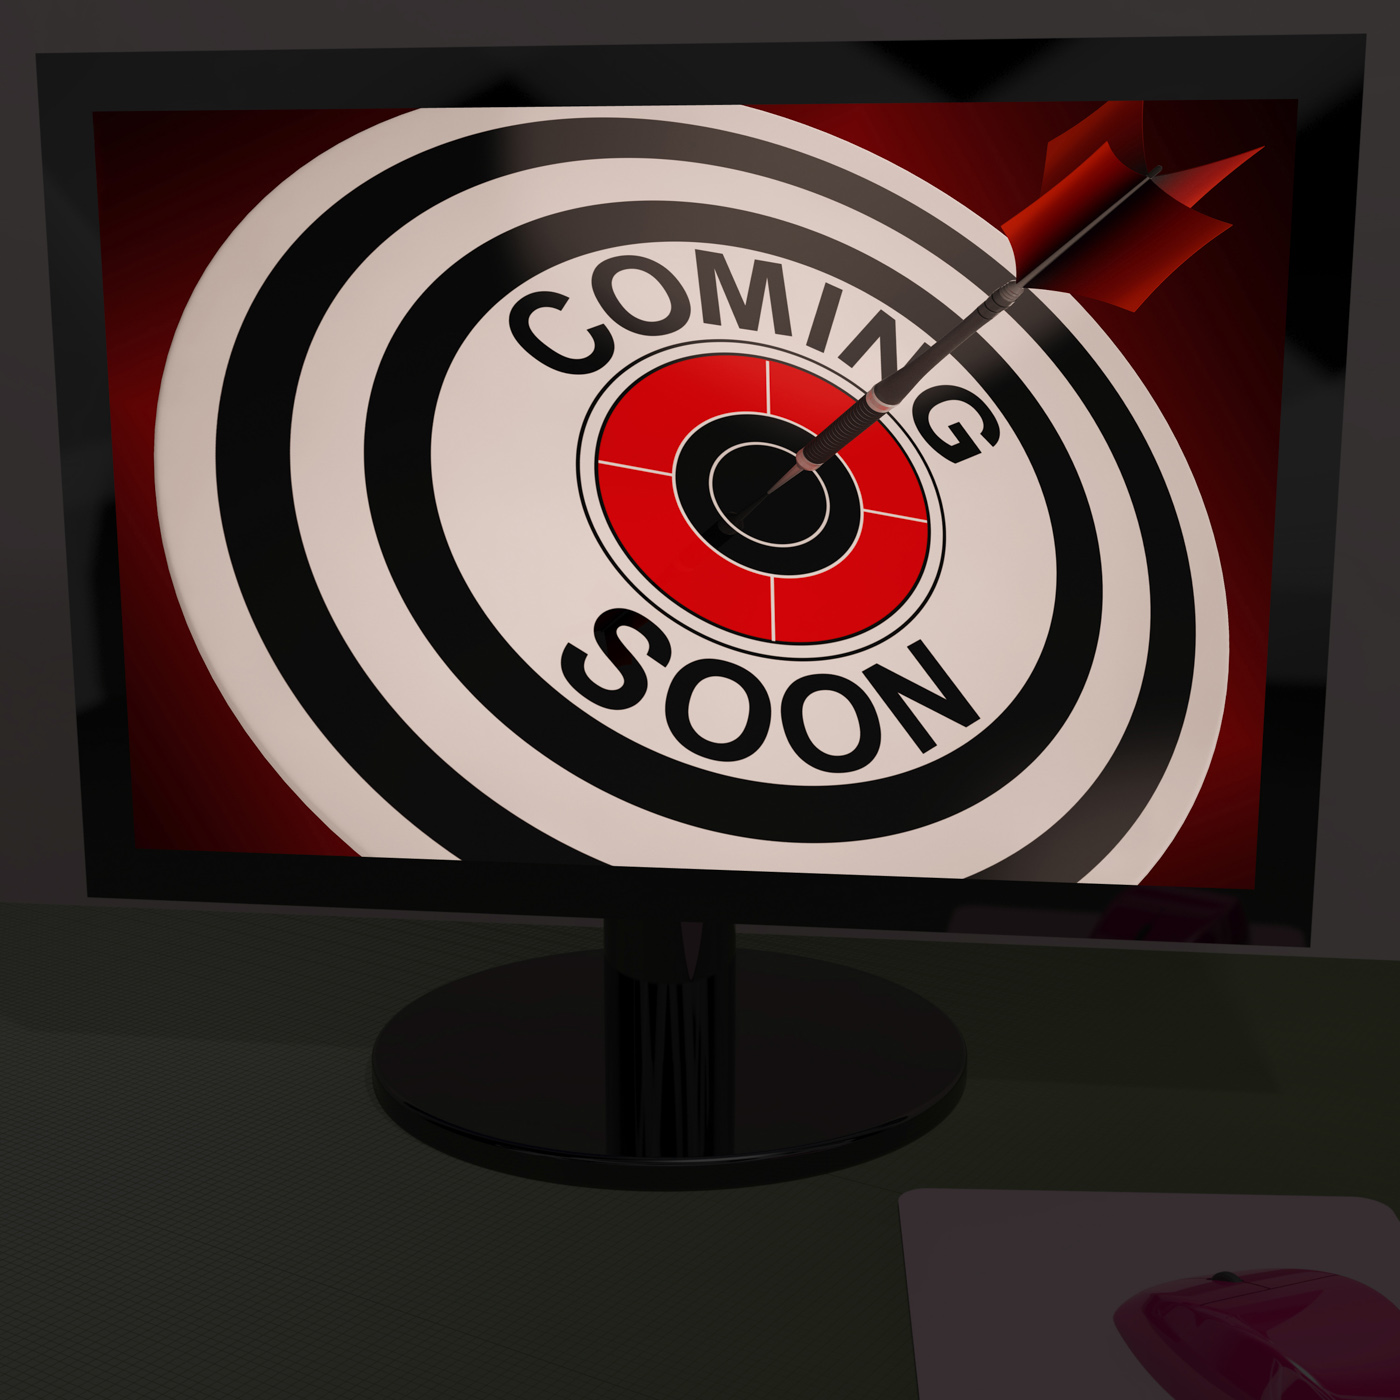 Coming soon on monitor shows arriving promotions photo